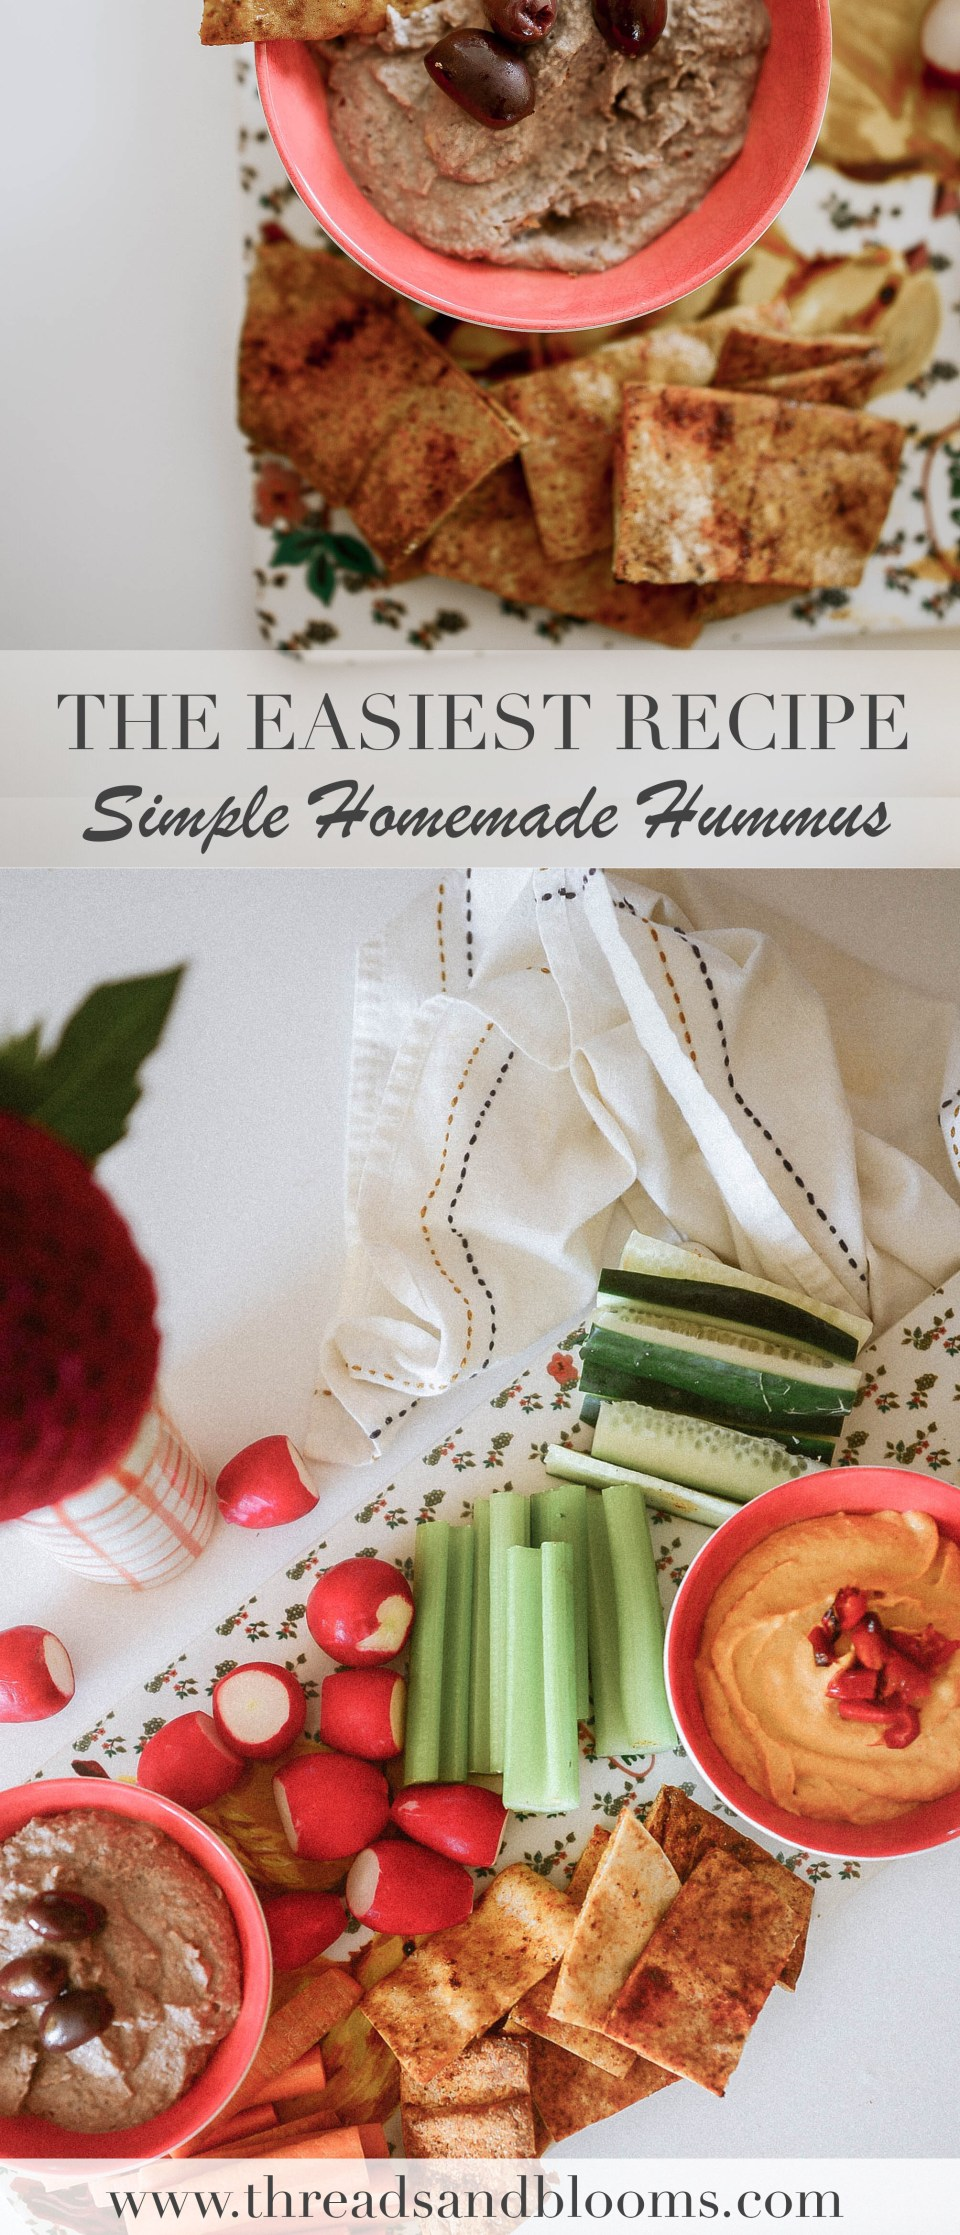 How to Make Hummus - Easy Hummus Recipe to Follow